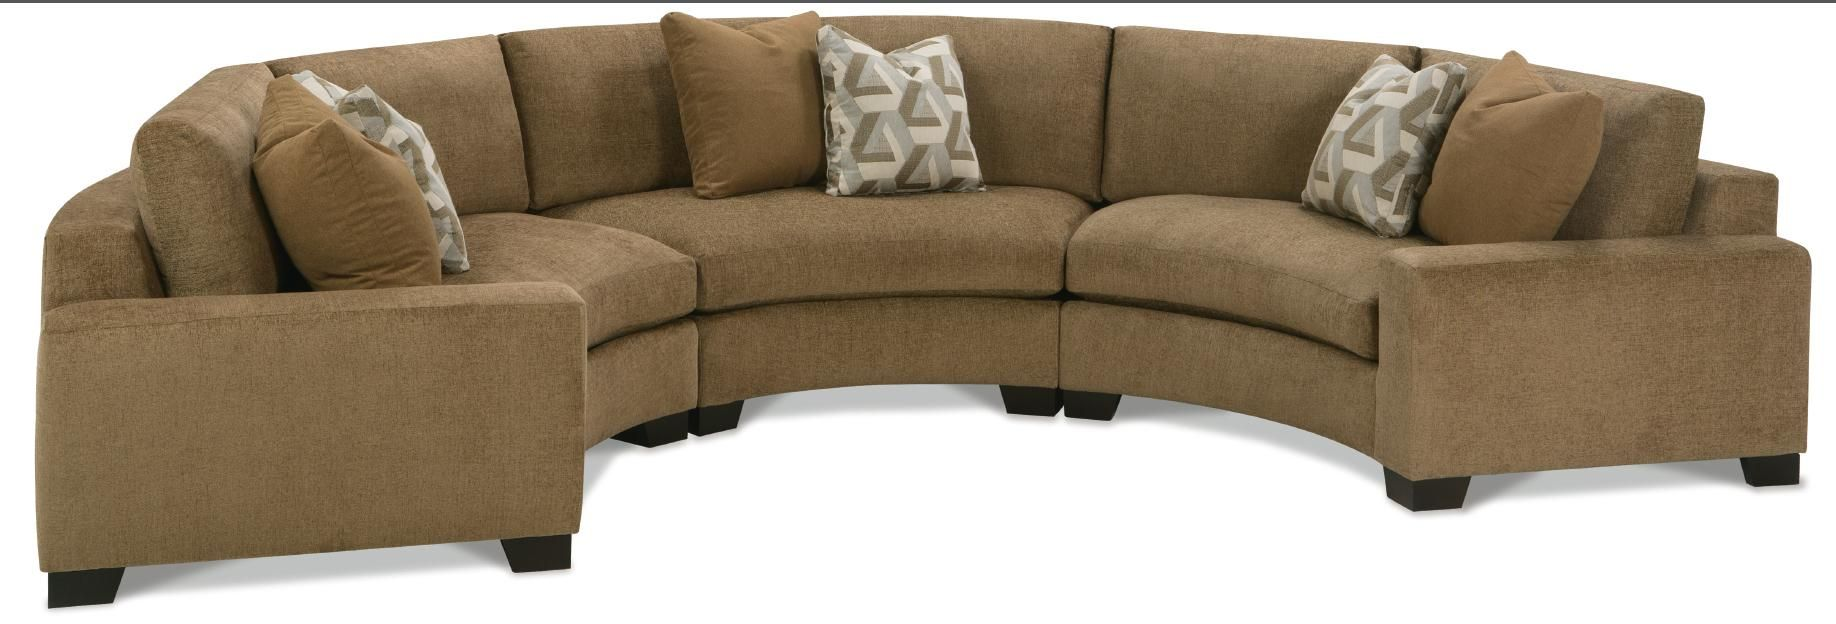 Sectional Sofa By Rowe